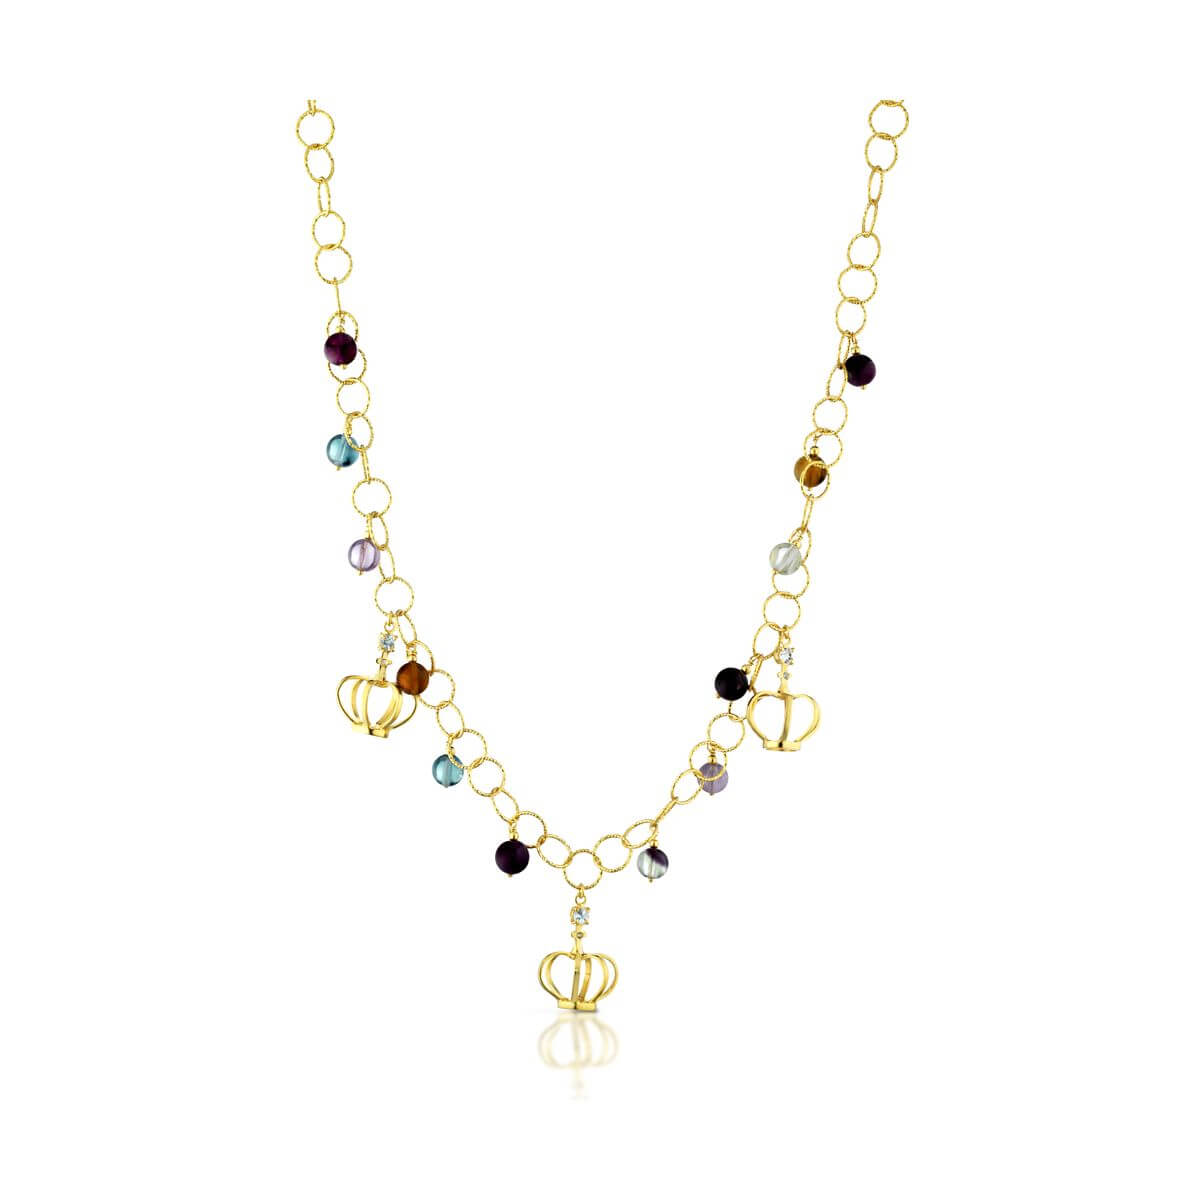 Fluorite and blue topaz necklace